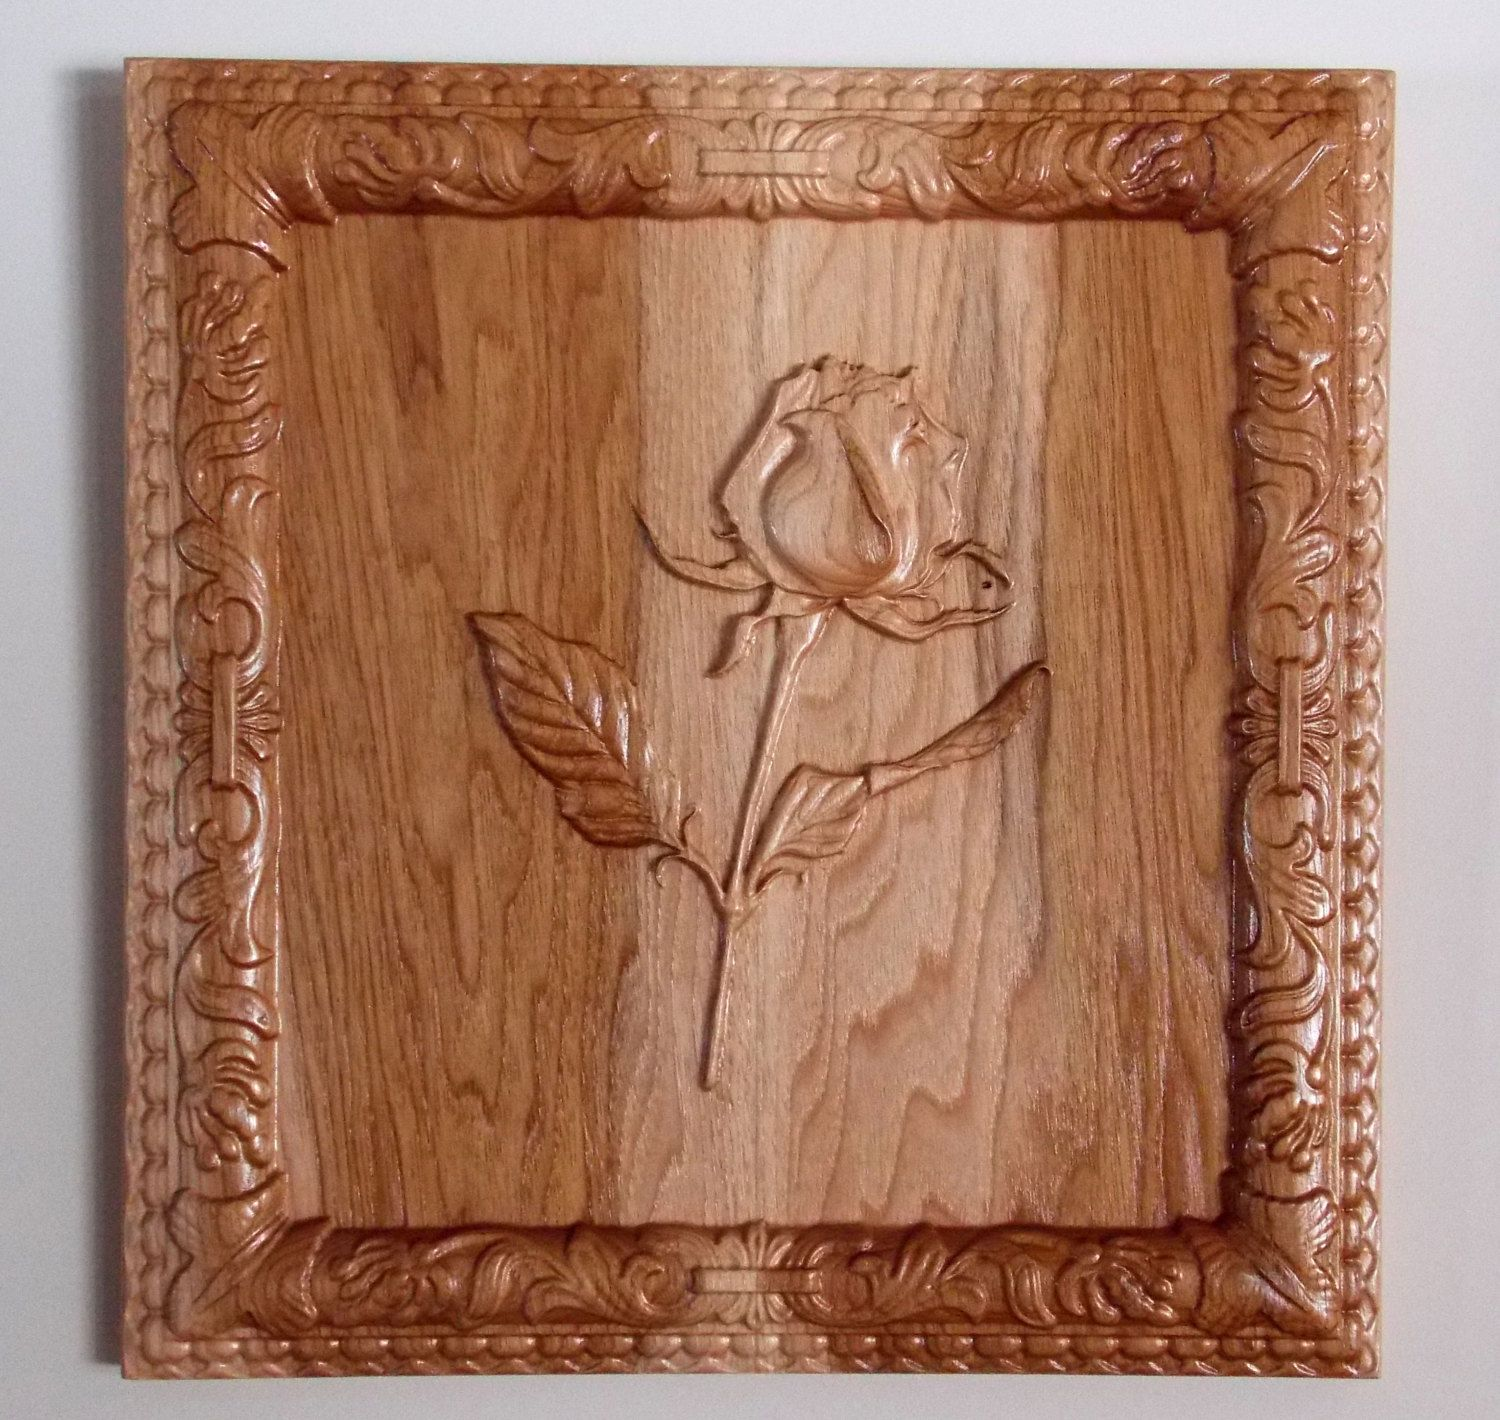 Long Stem Rose Rose Wall Art Rose Wood Rose Wall Decor